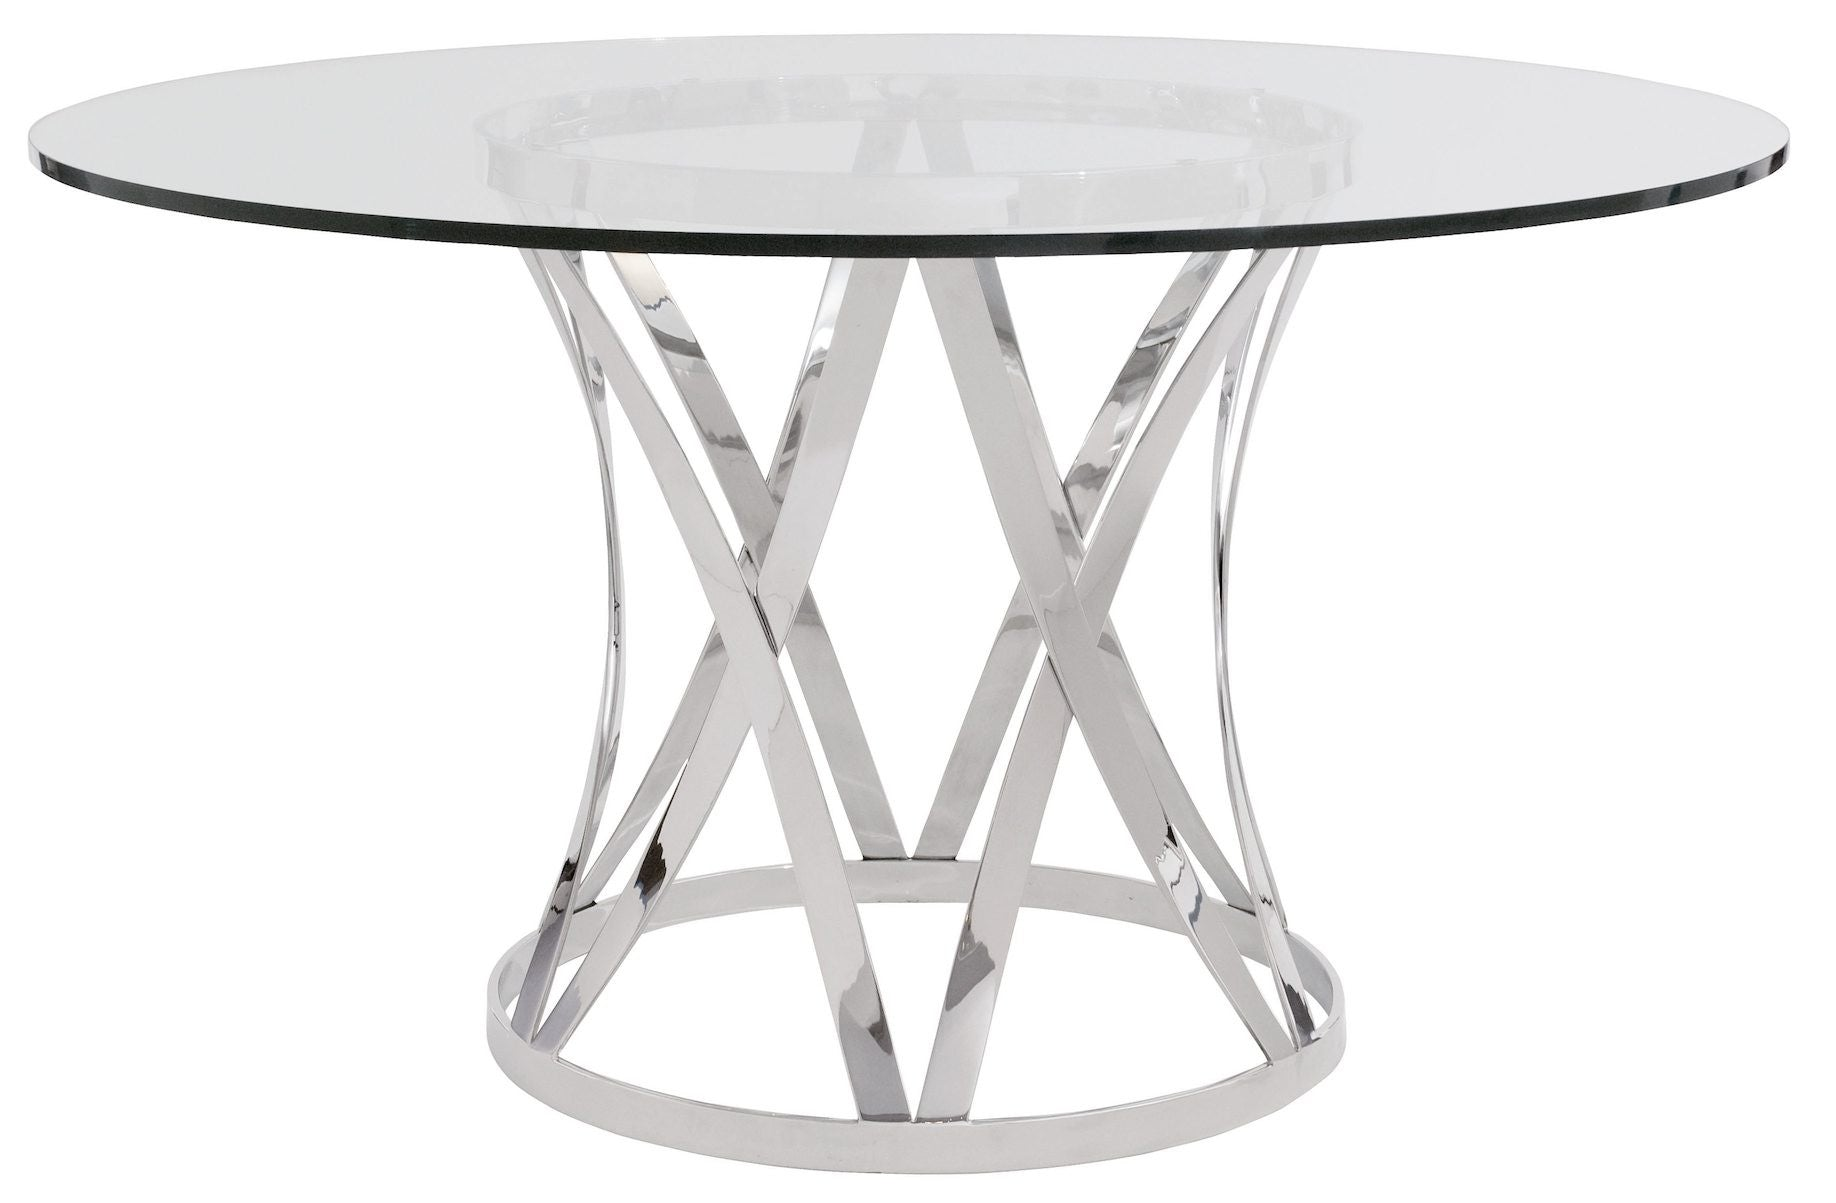 Amazing Dining Room Table Base For Glass Top Photos House